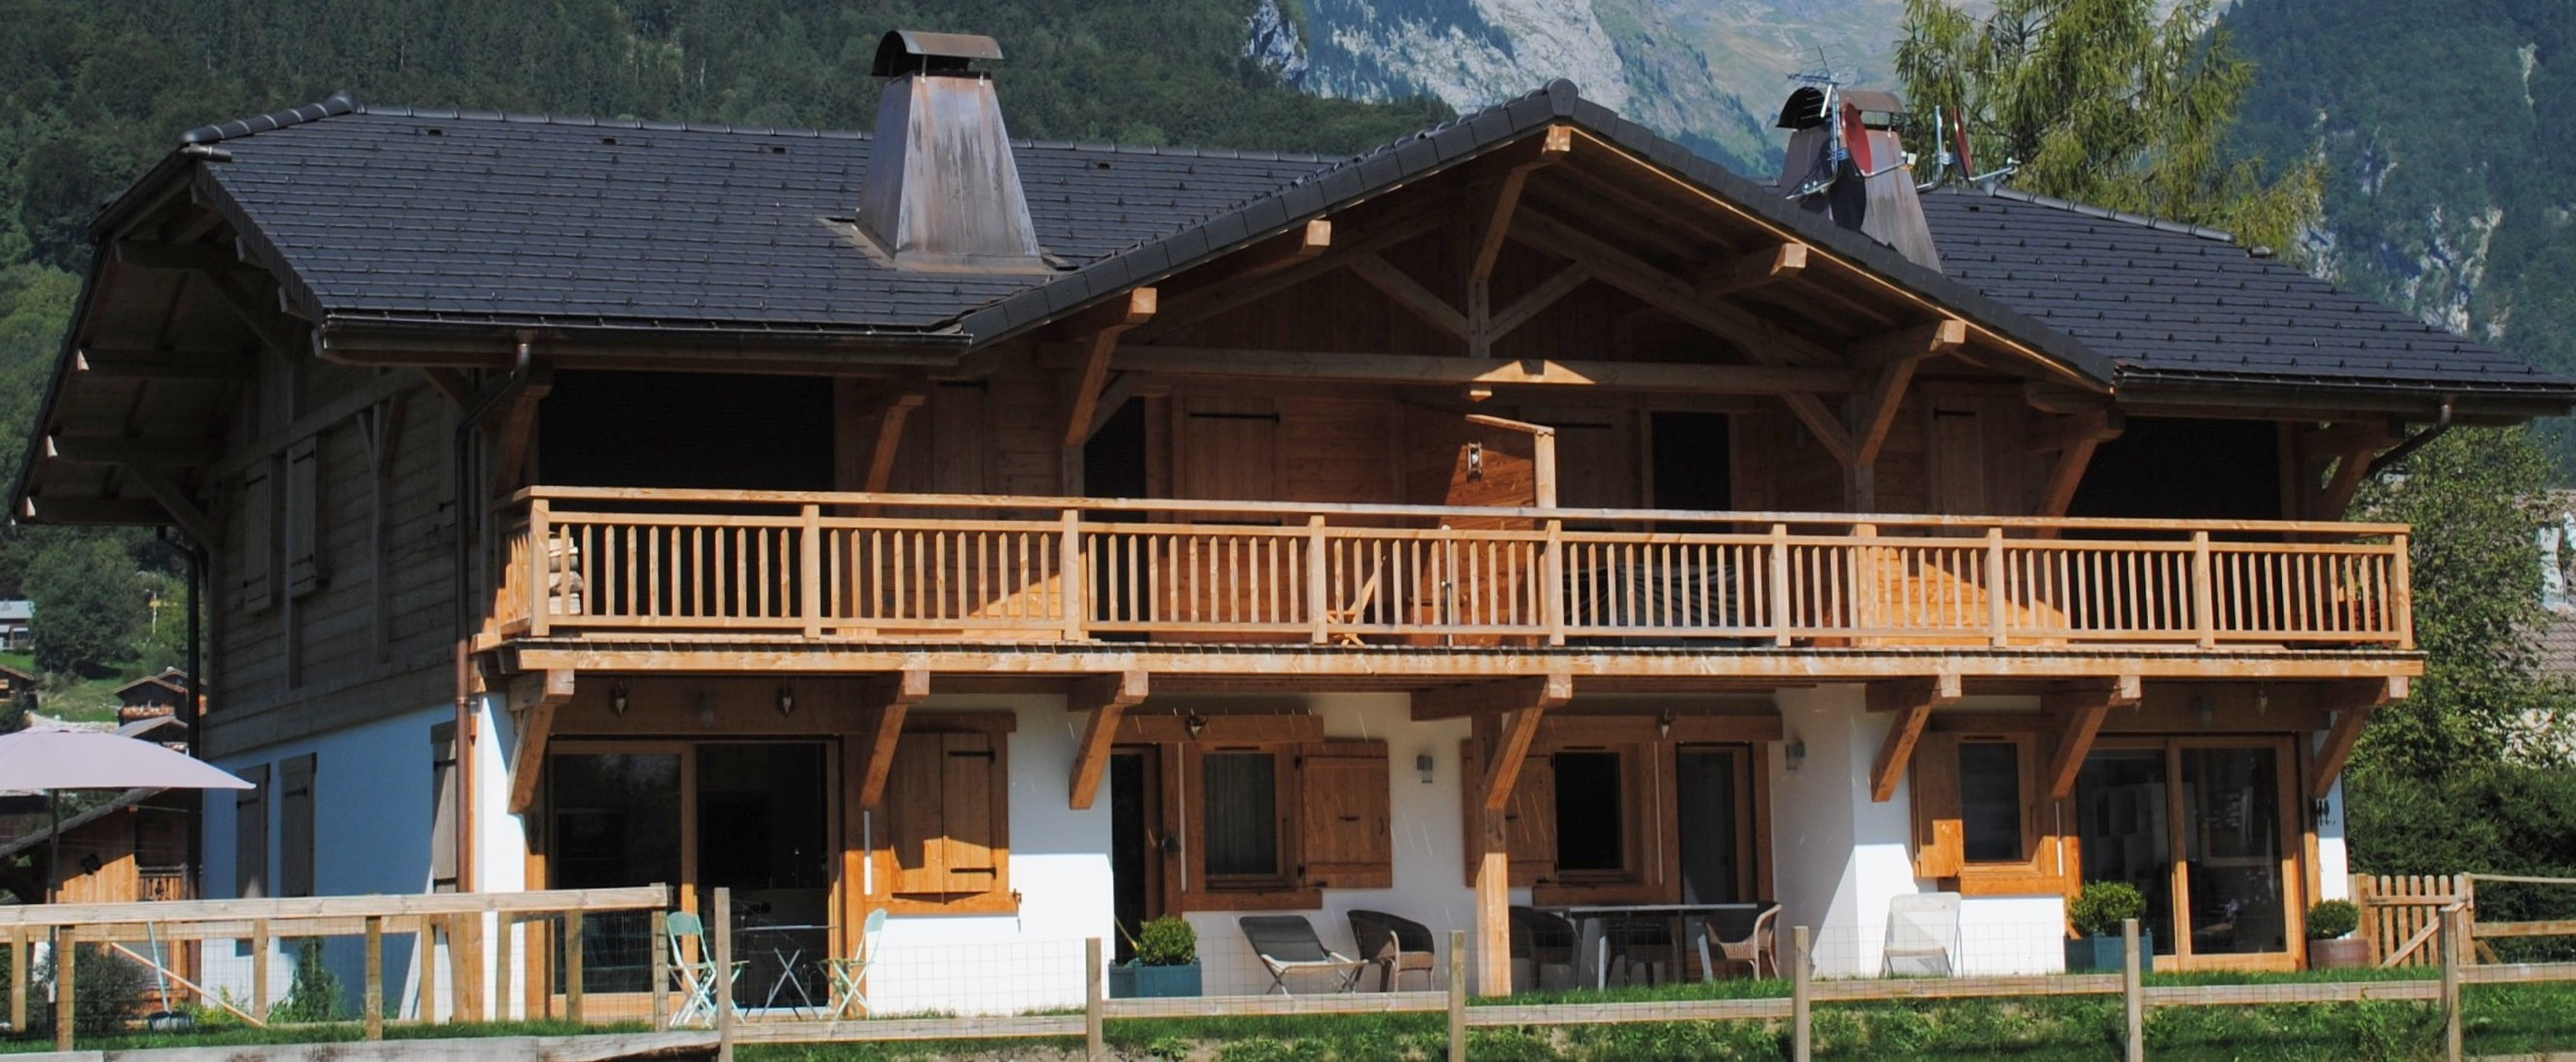 Himalia alpes chalets agence immobili re samo ns for Agence immobiliere 74